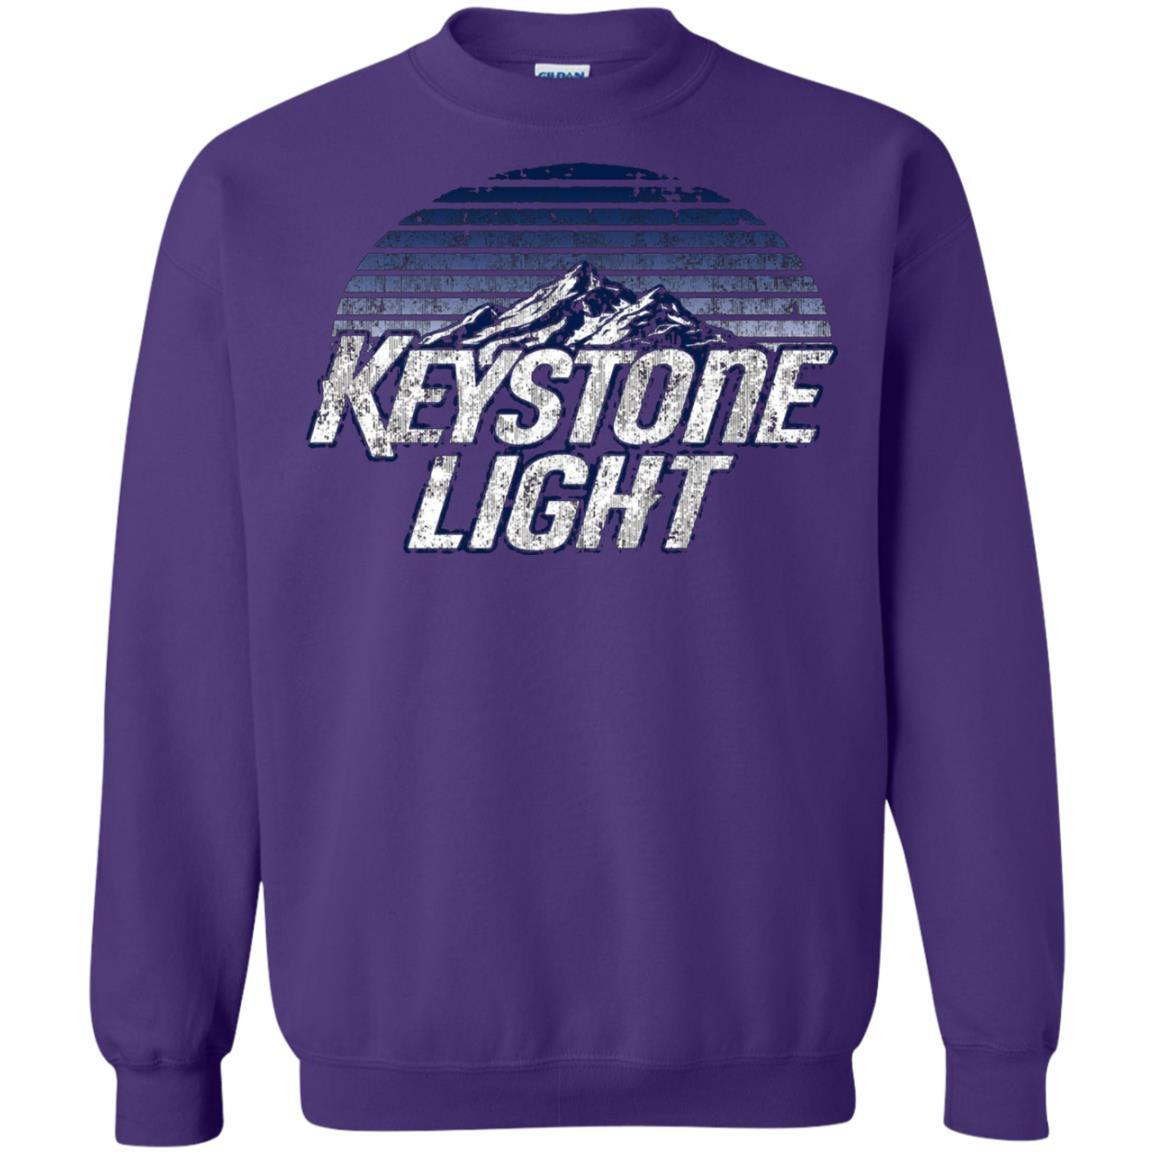 Keystone Light Beer Classic Look - Pullover Sweatshirt Purple / 5XL